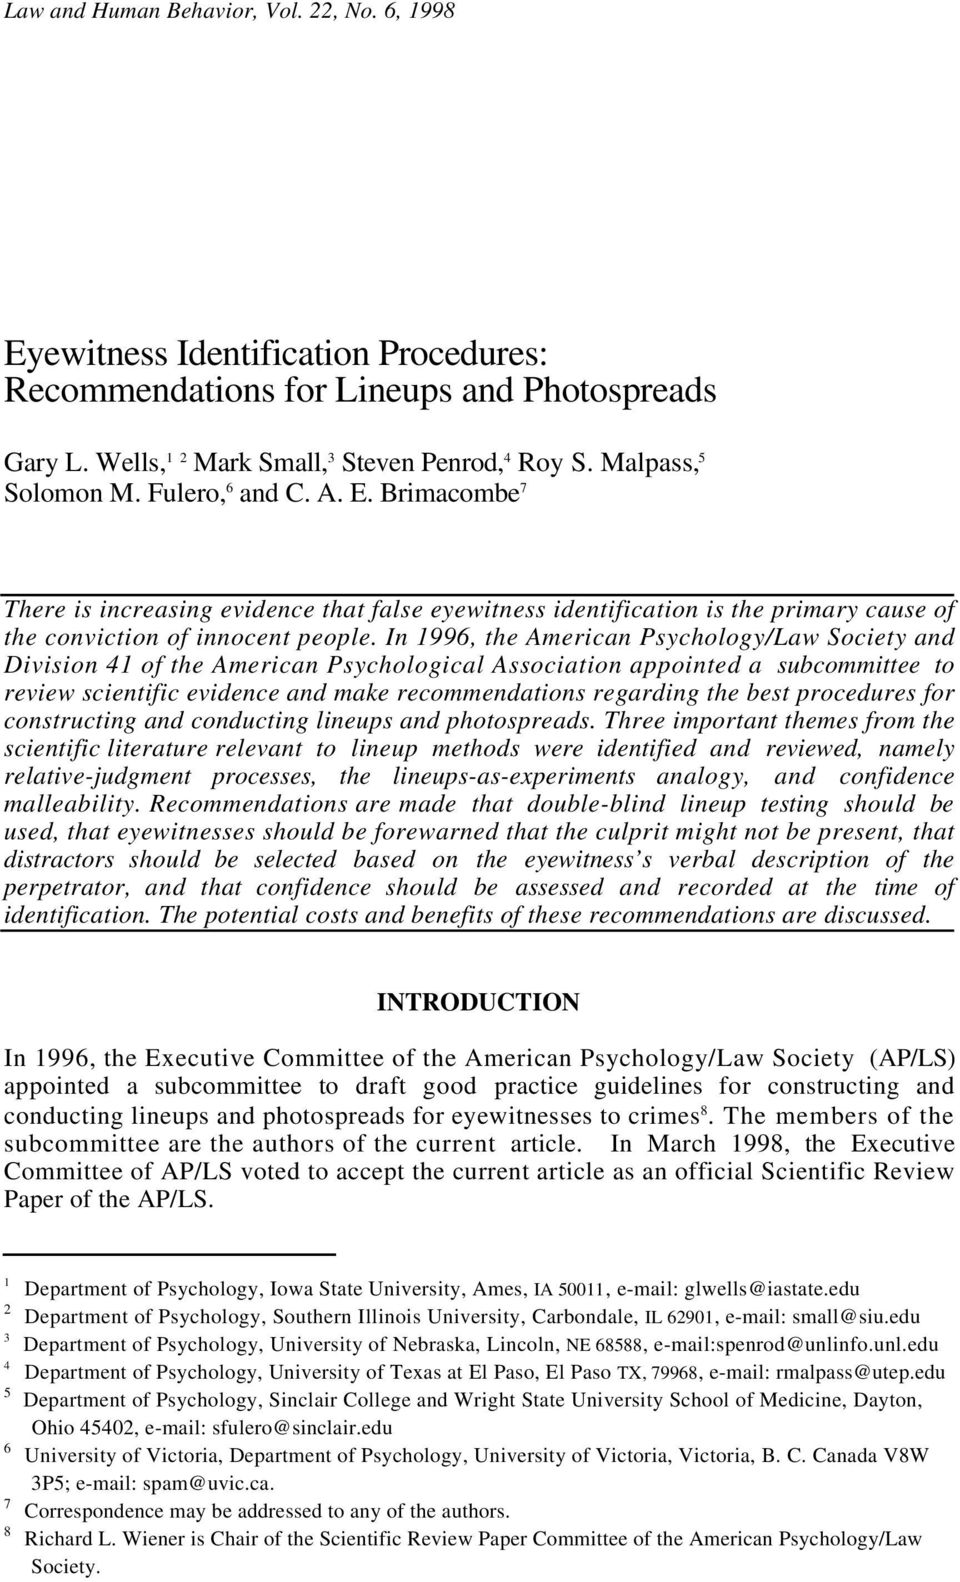 In 1996, the American Psychology/Law Society and Division 41 of the American Psychological Association appointed a subcommittee to review scientific evidence and make recommendations regarding the